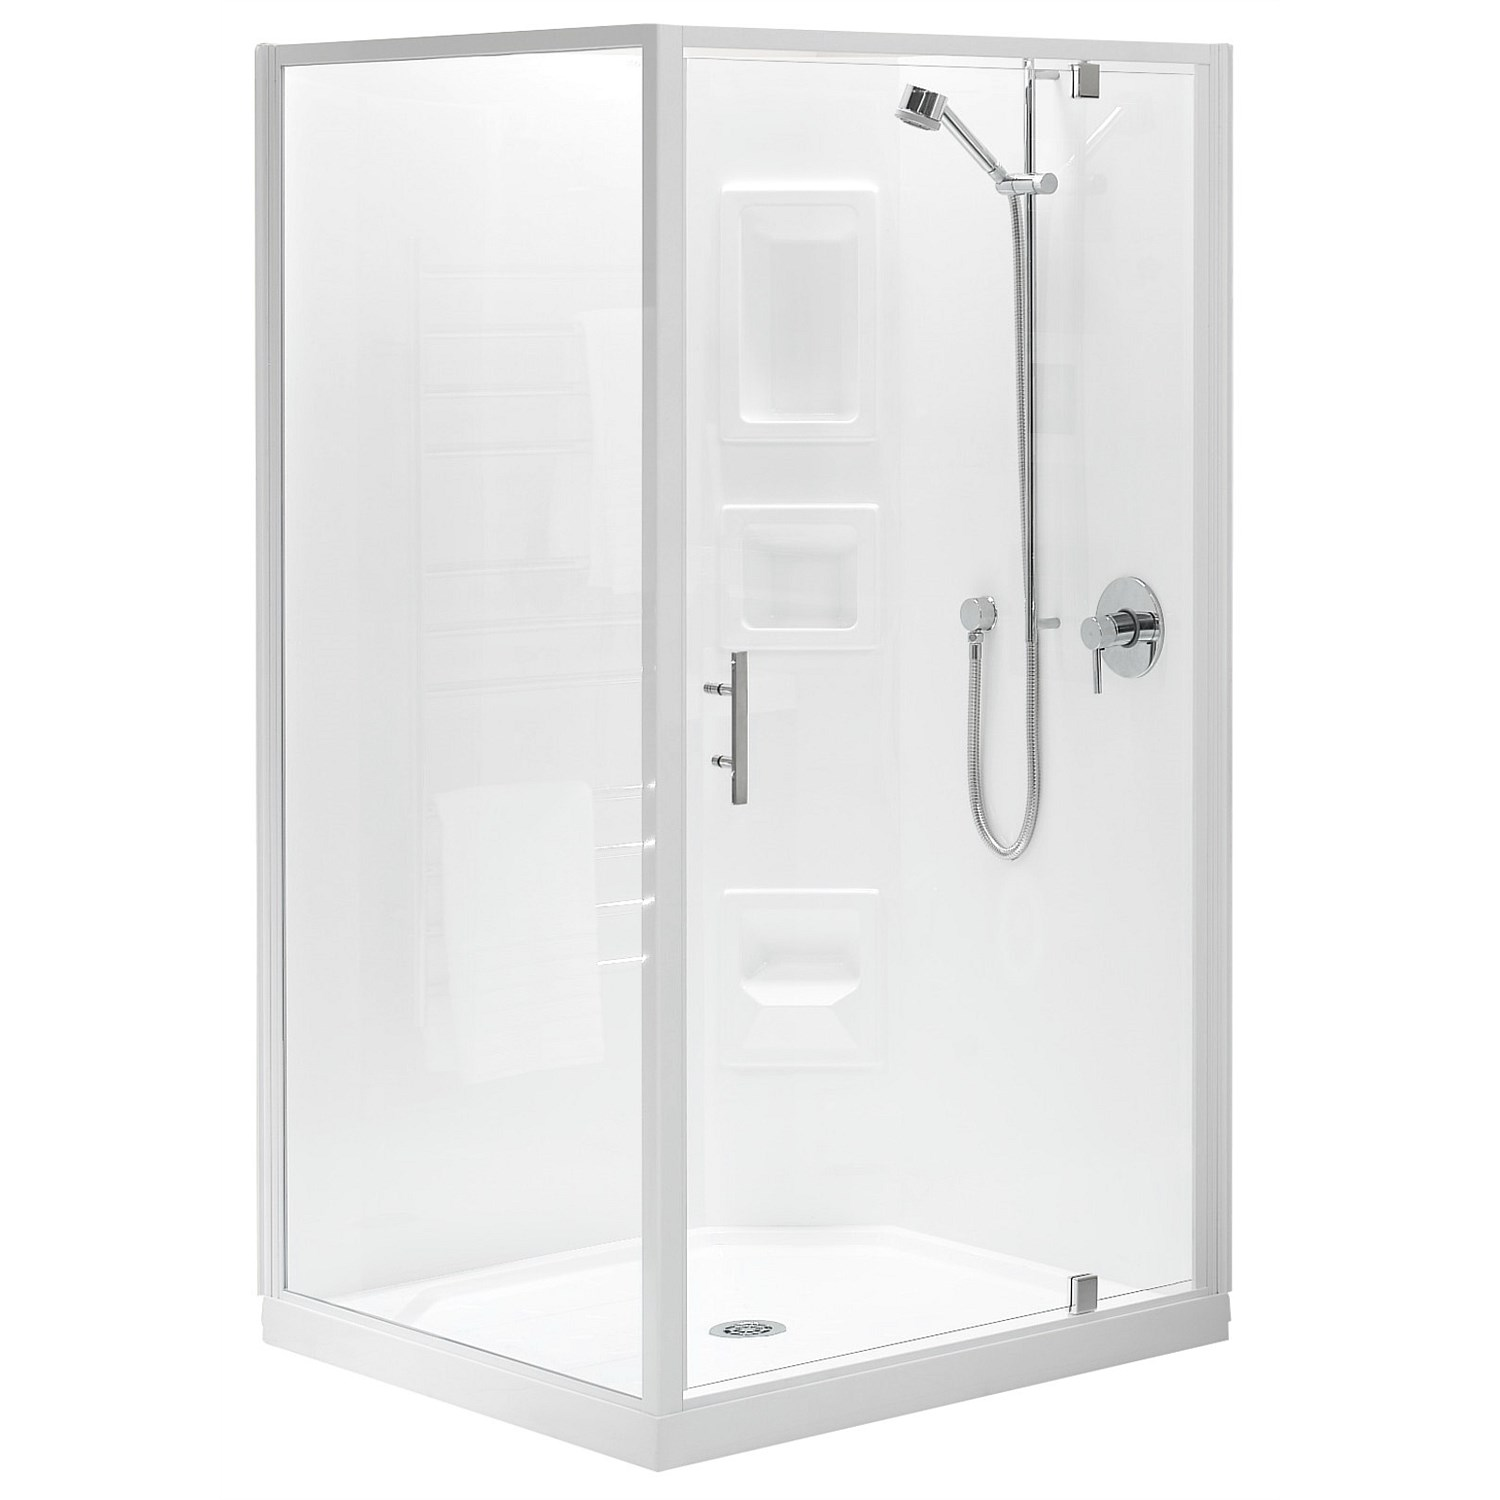 Showers - Clearlite Induro 900mm 2 Sided Shower Enclosure